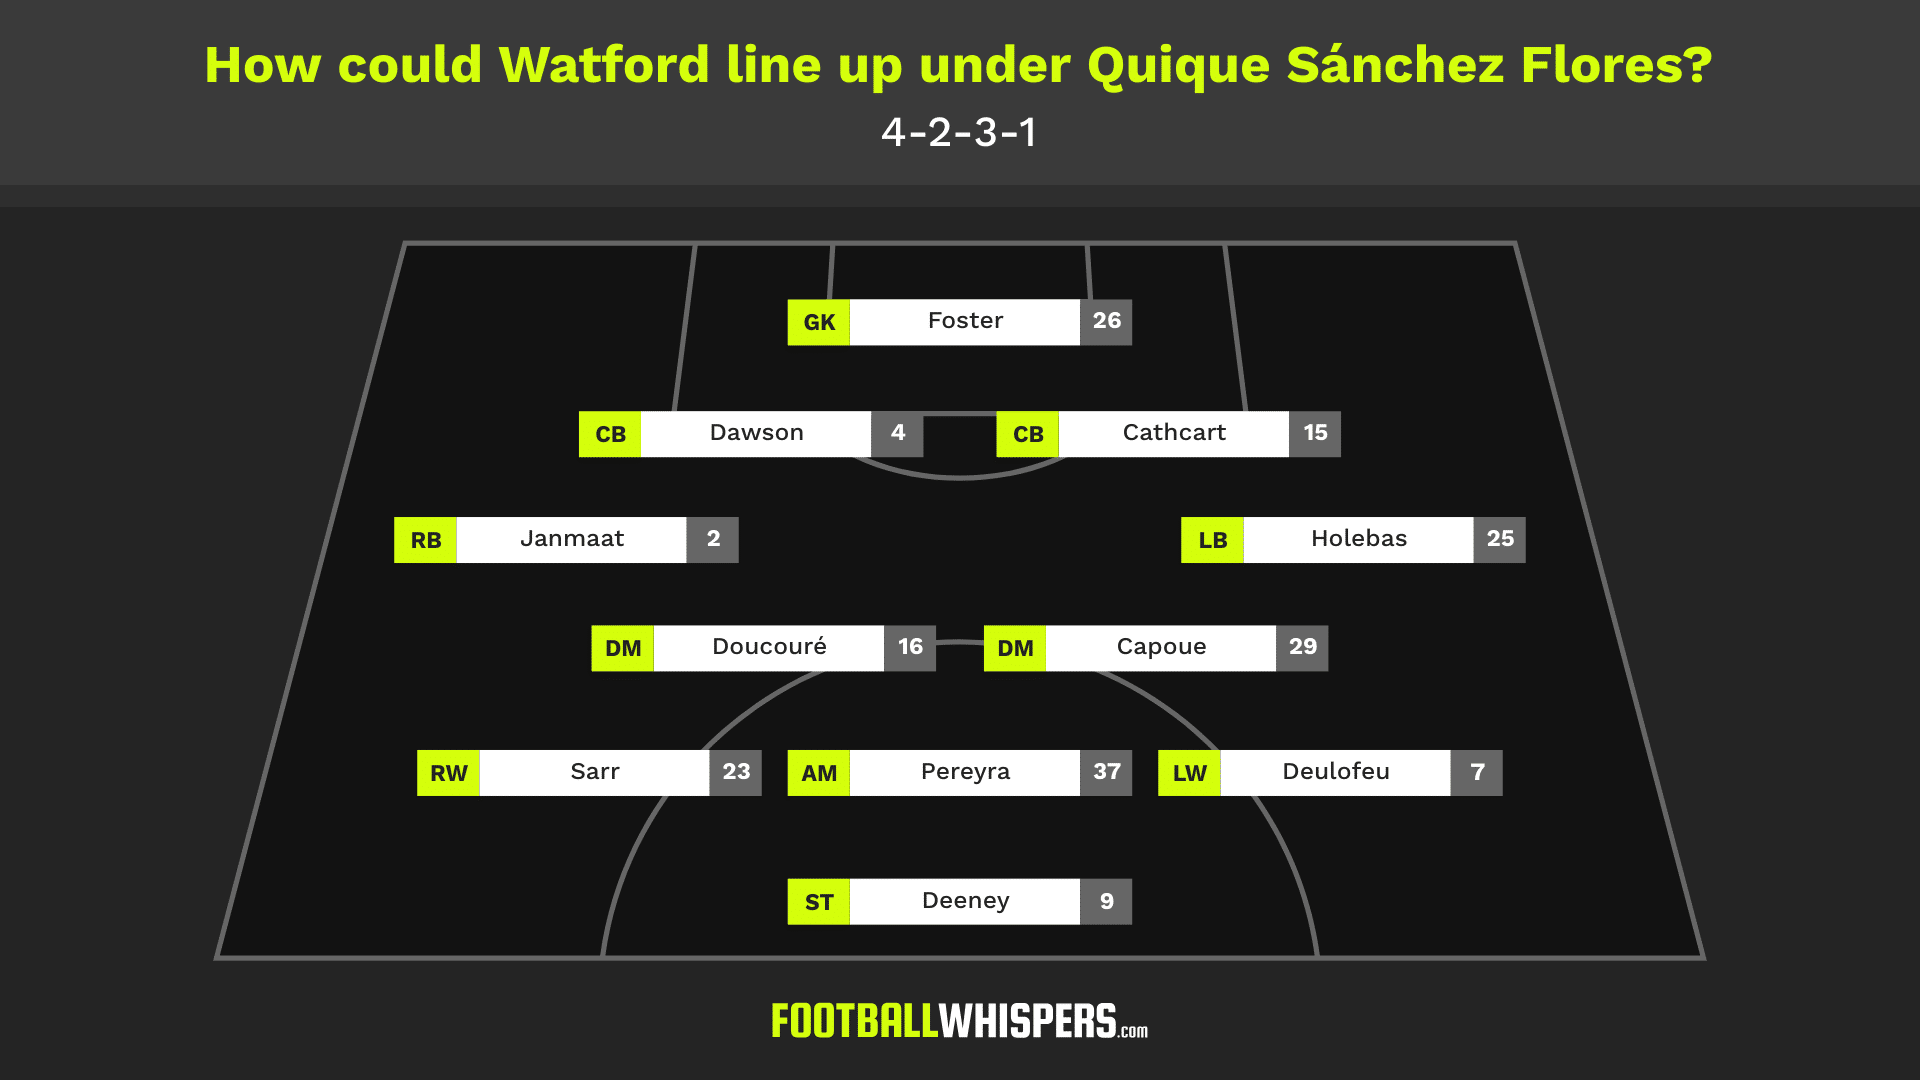 How could Watford line up under Quique Sánchez Flores?